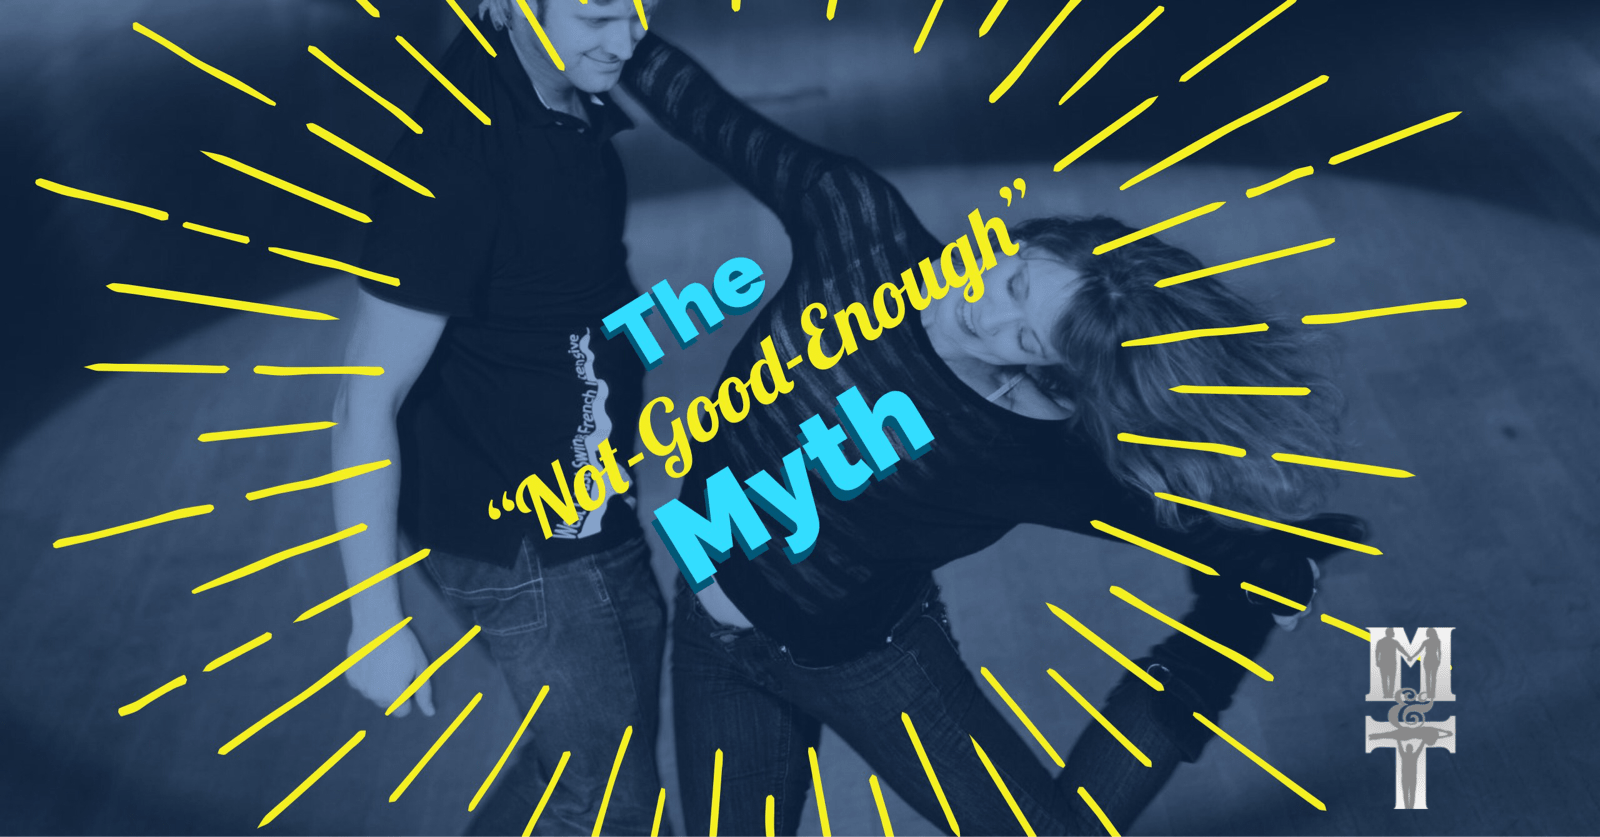 Psyching yourself out of dance experiences you think you aren't worthy of yet? You are not as restricted/excluded as you think you are! This article needs sharing! #WCScoachscorner #iamworthy #ideserveit #iamgoodenoughforarmstyling